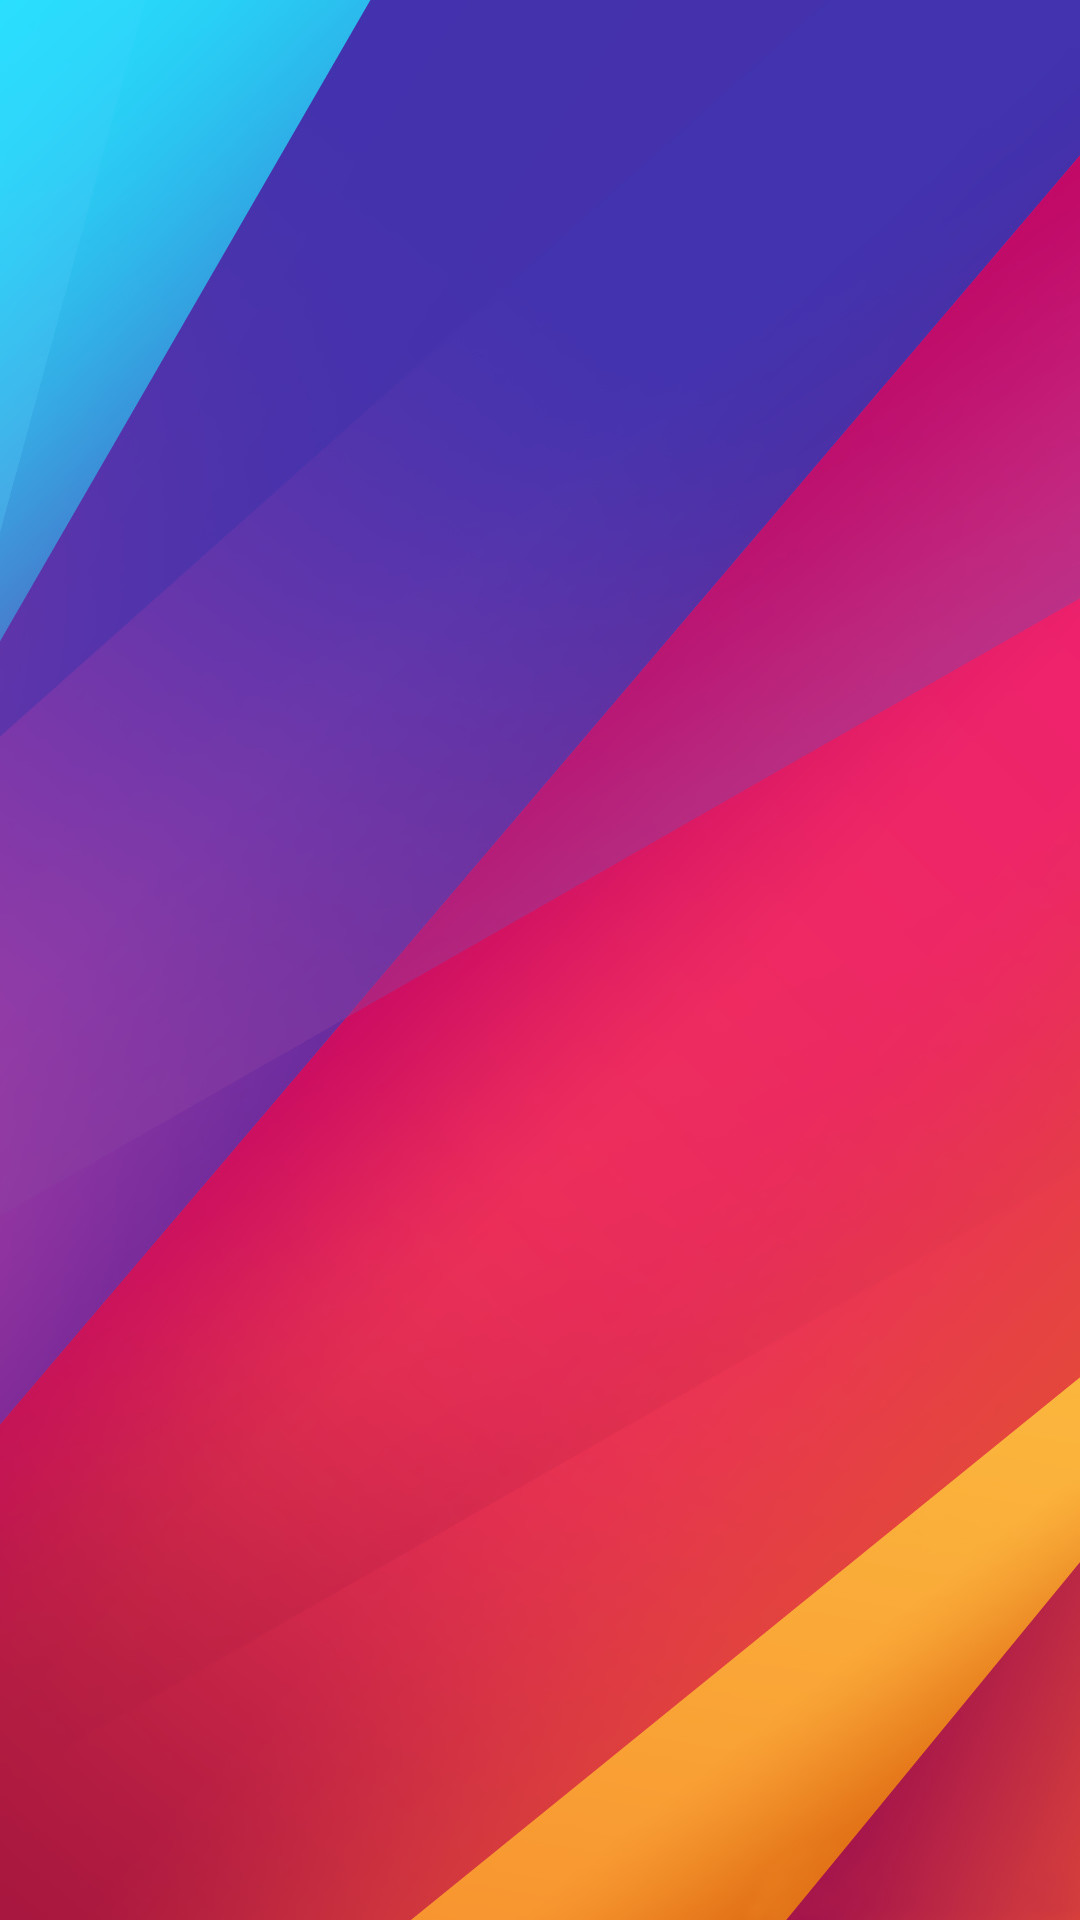 Download Flyme OS 5.0 and Flyme OS 6 Stock Wallpapers